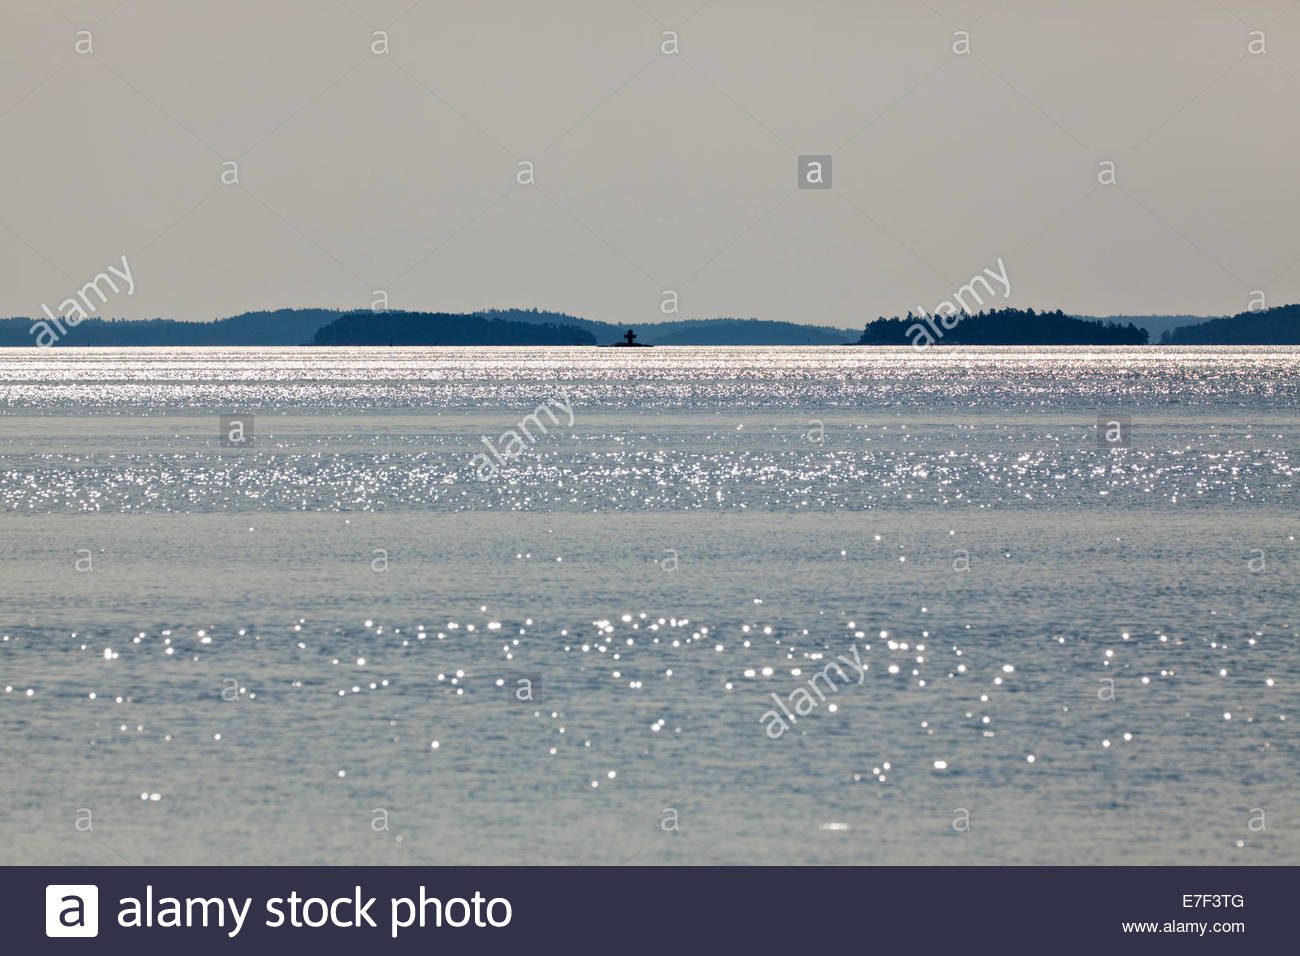 Seawater glistening in the morning at Baltic Sea - Stock Image